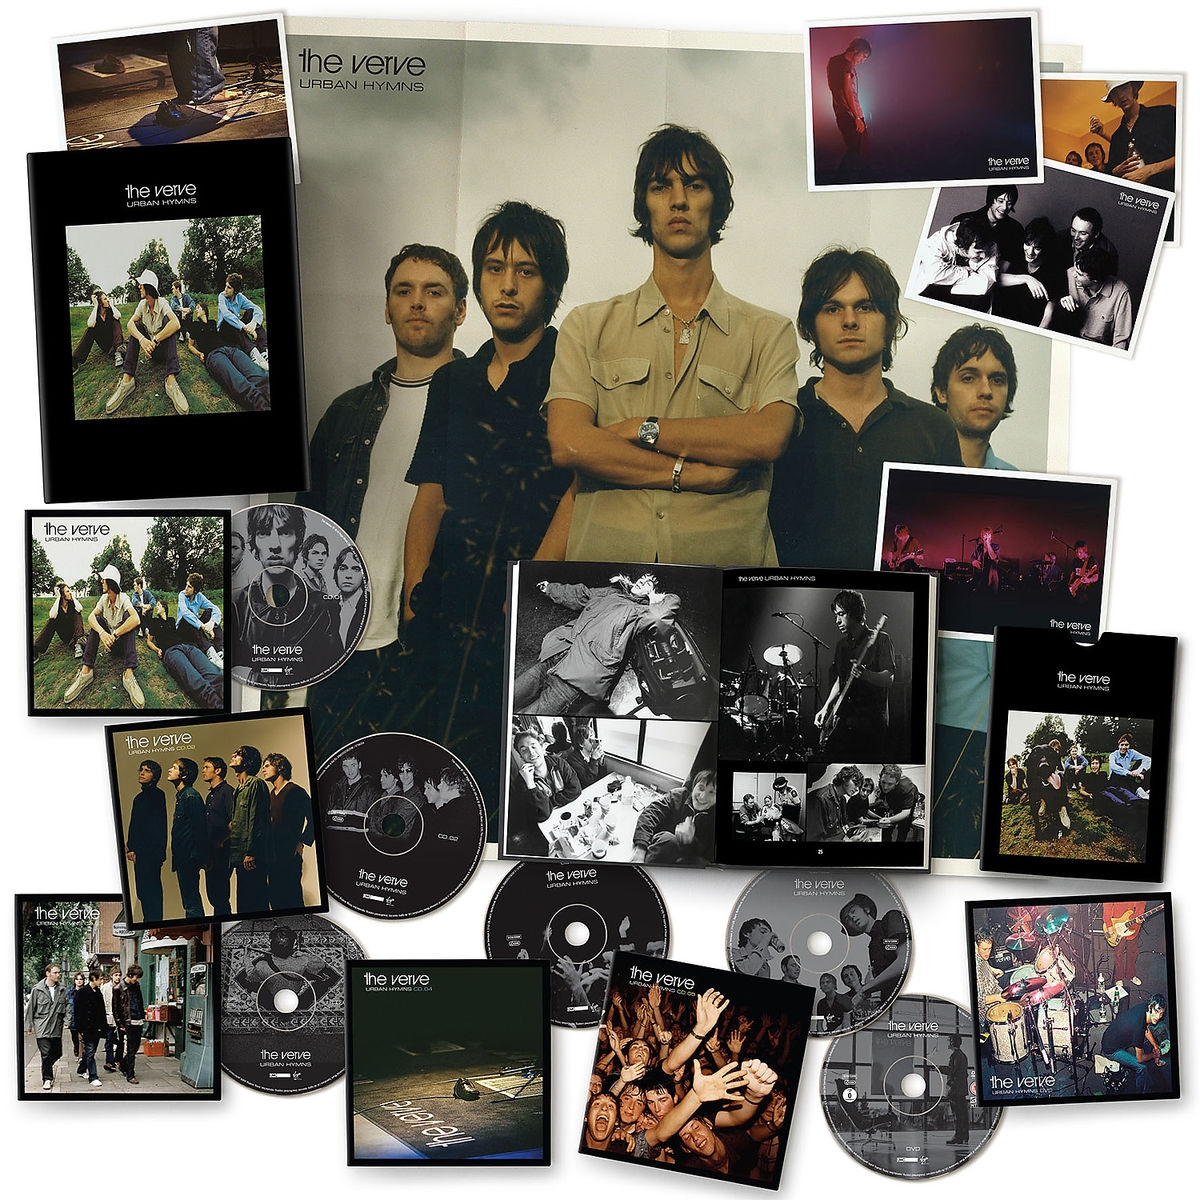 ultratop be - The Verve - Urban Hymns